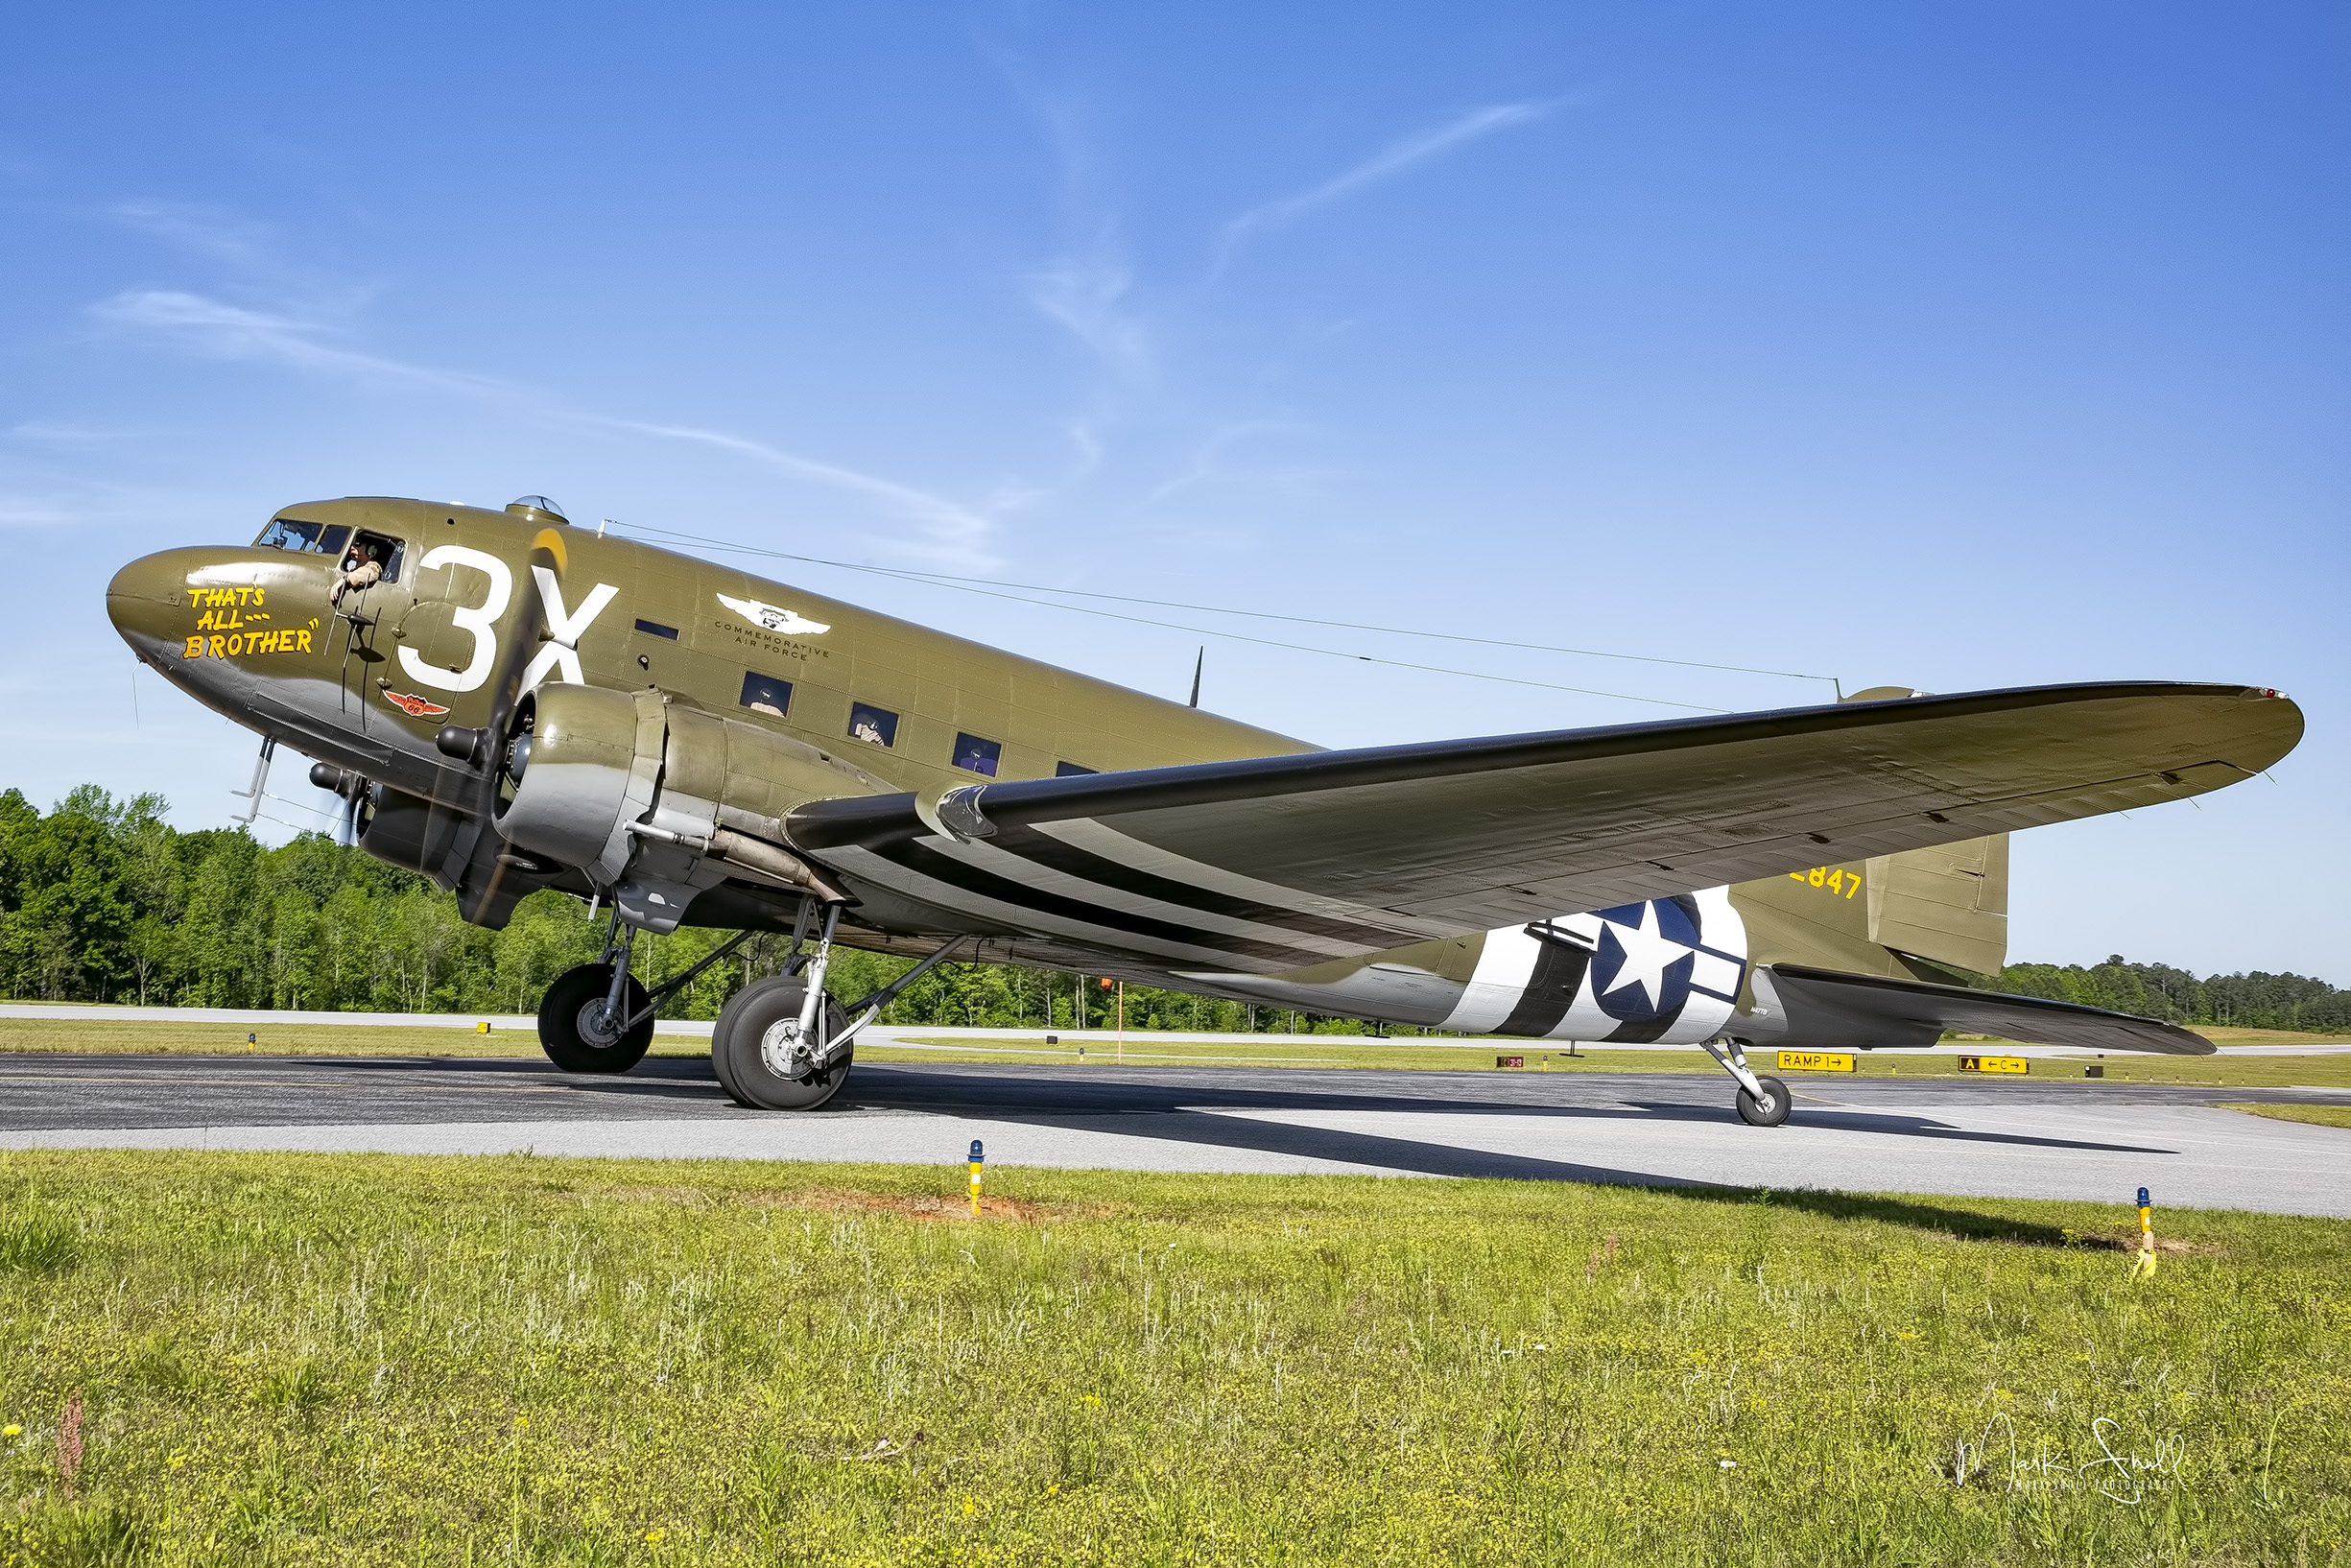 C-47 3X ready for takeoff post